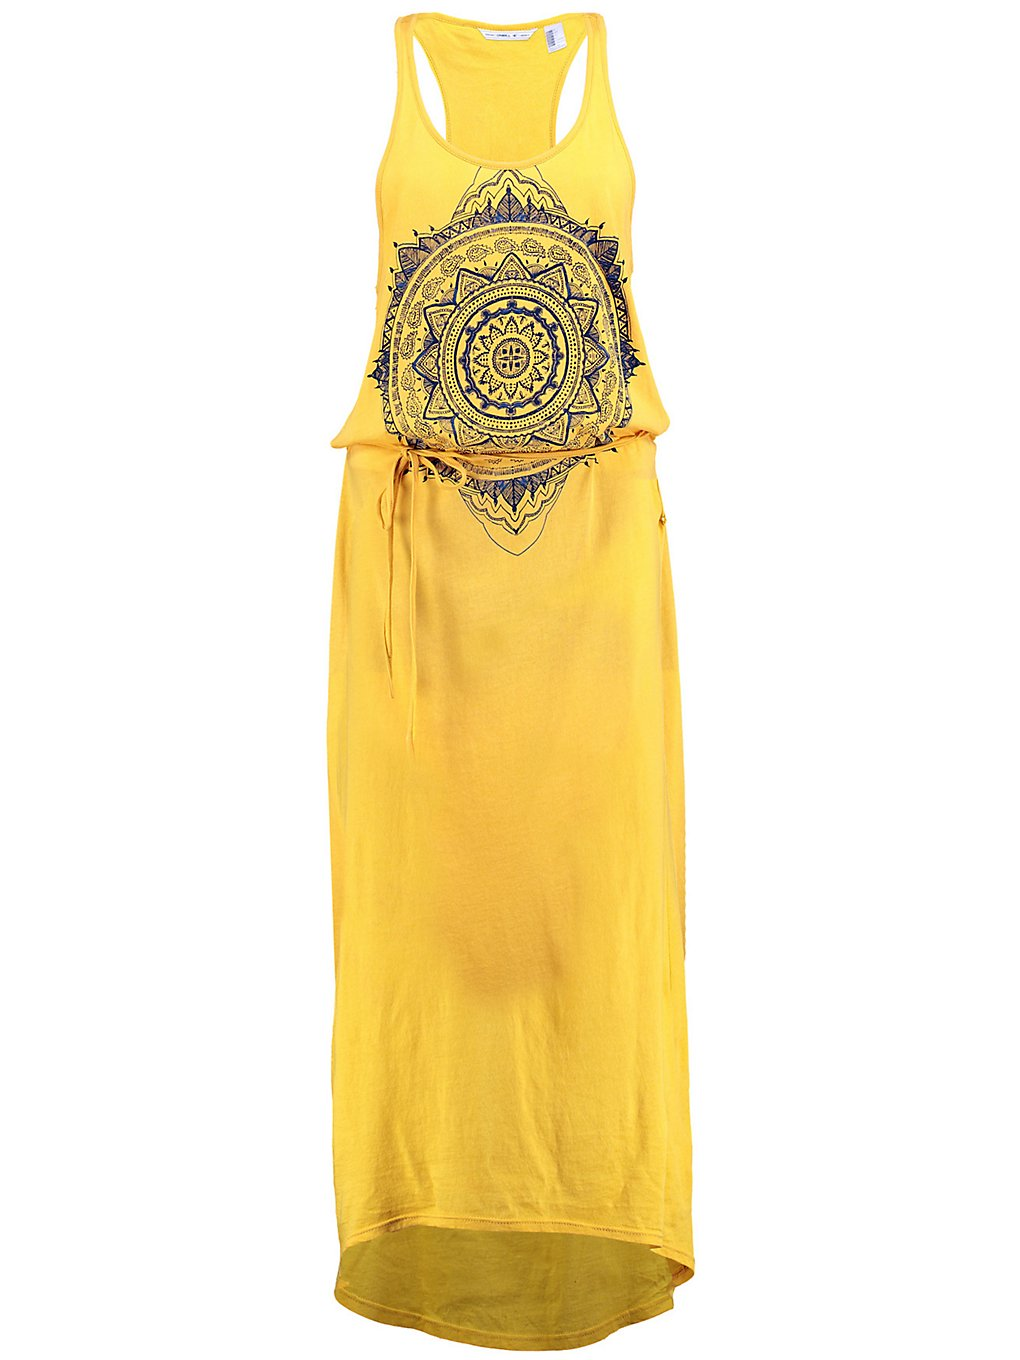 O'Neill Beach Bliss Dress yellow curry